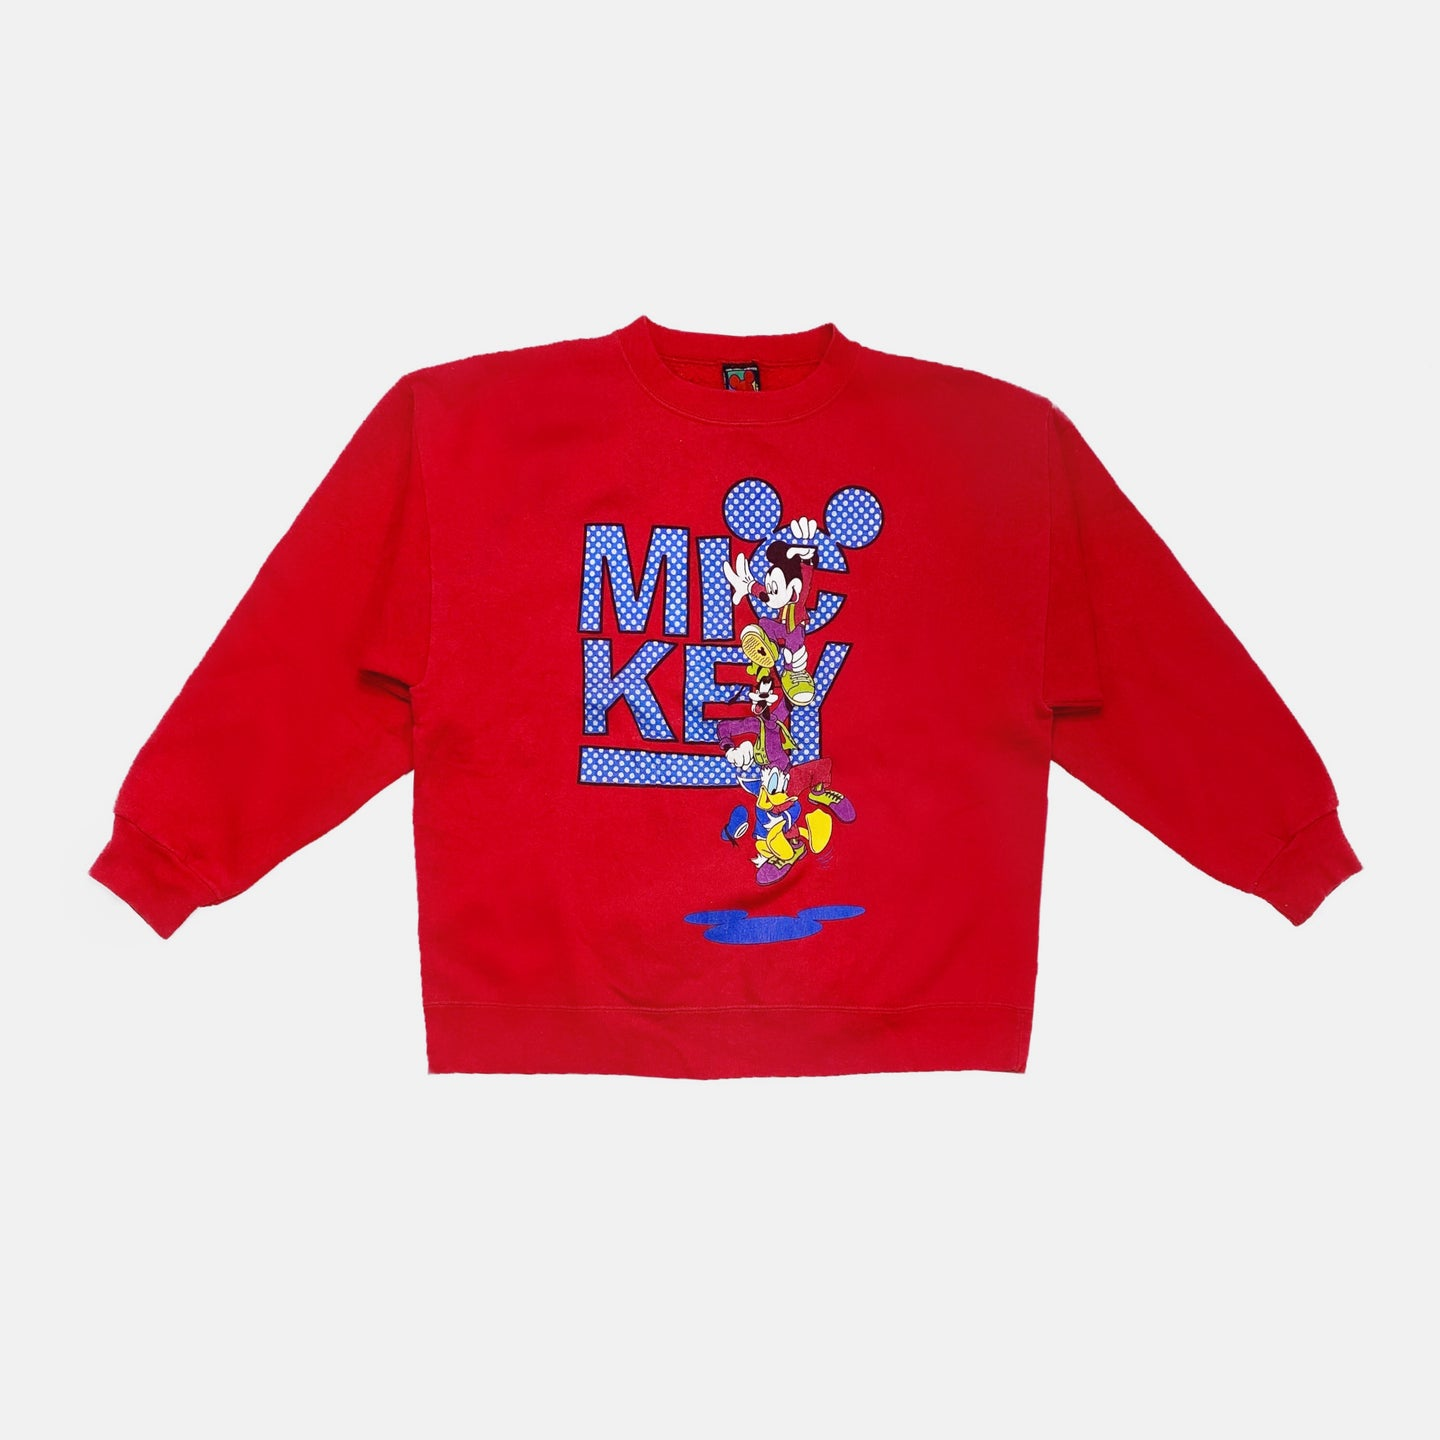 DISNEY MICKEY GOFFY DONALD GRAPHIC CREWNECK SWEATSHIRT-BASEMENT SIX